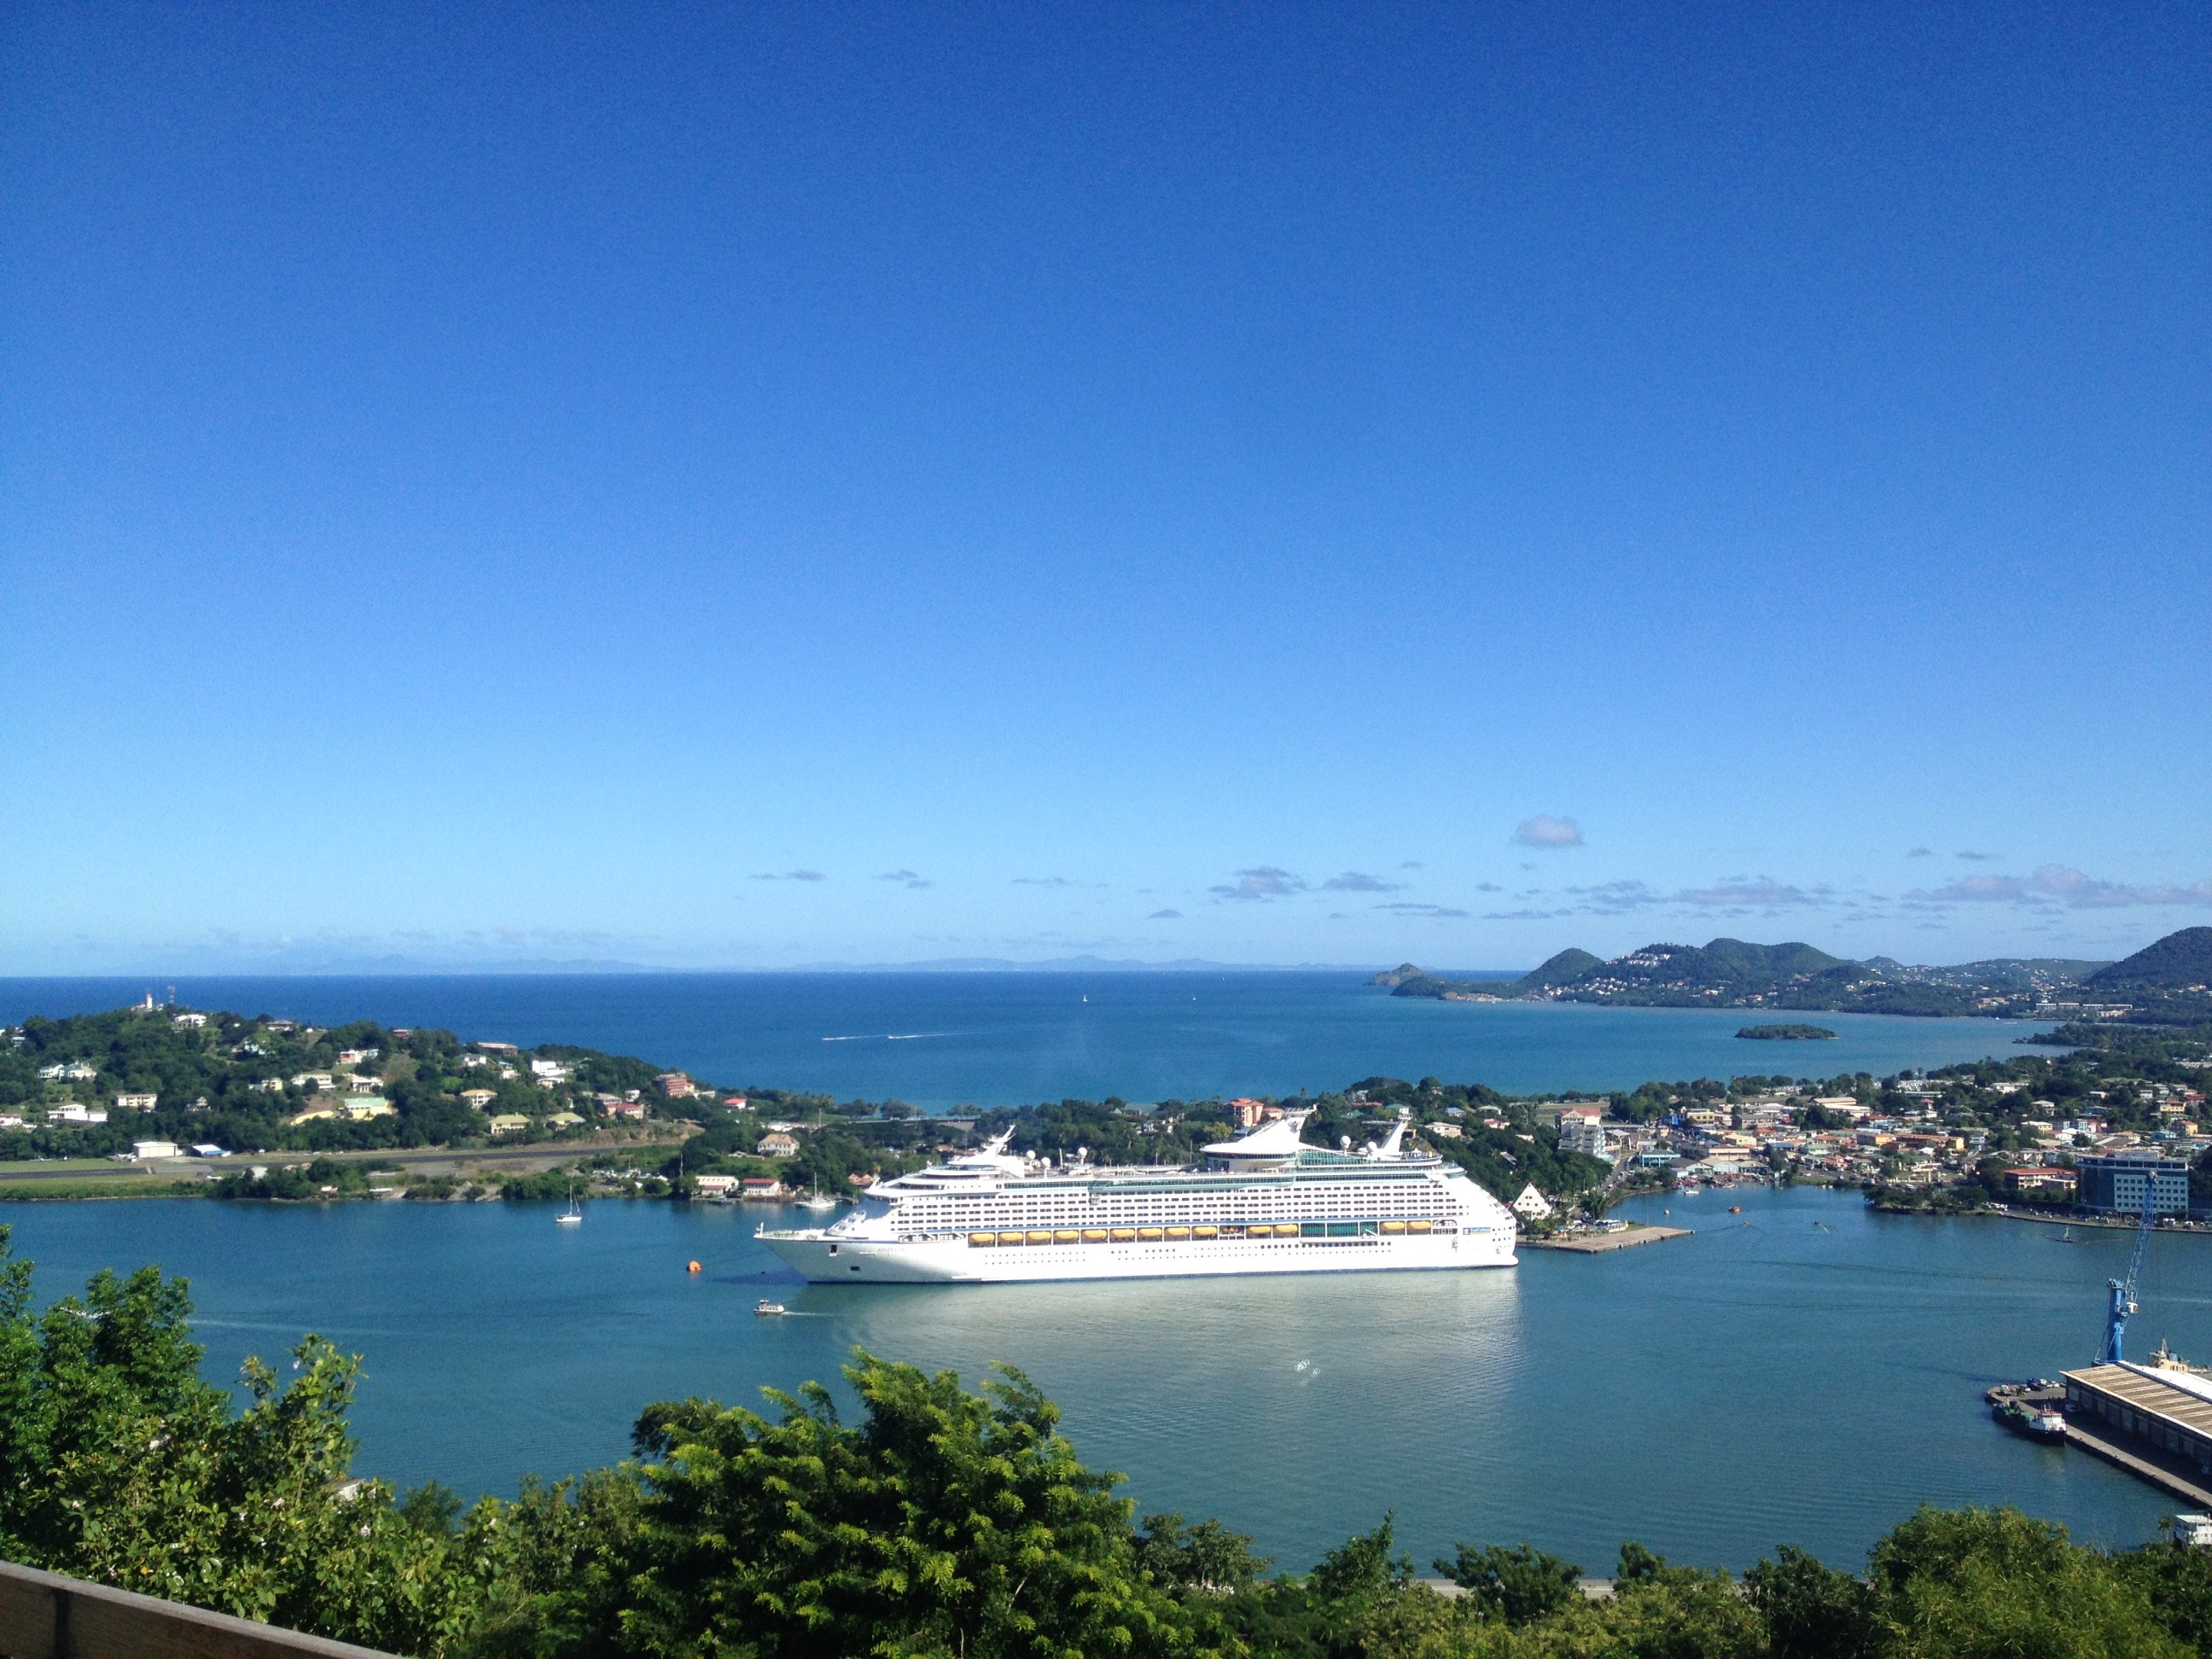 The Adventure of the Seas in Port in St Lucia